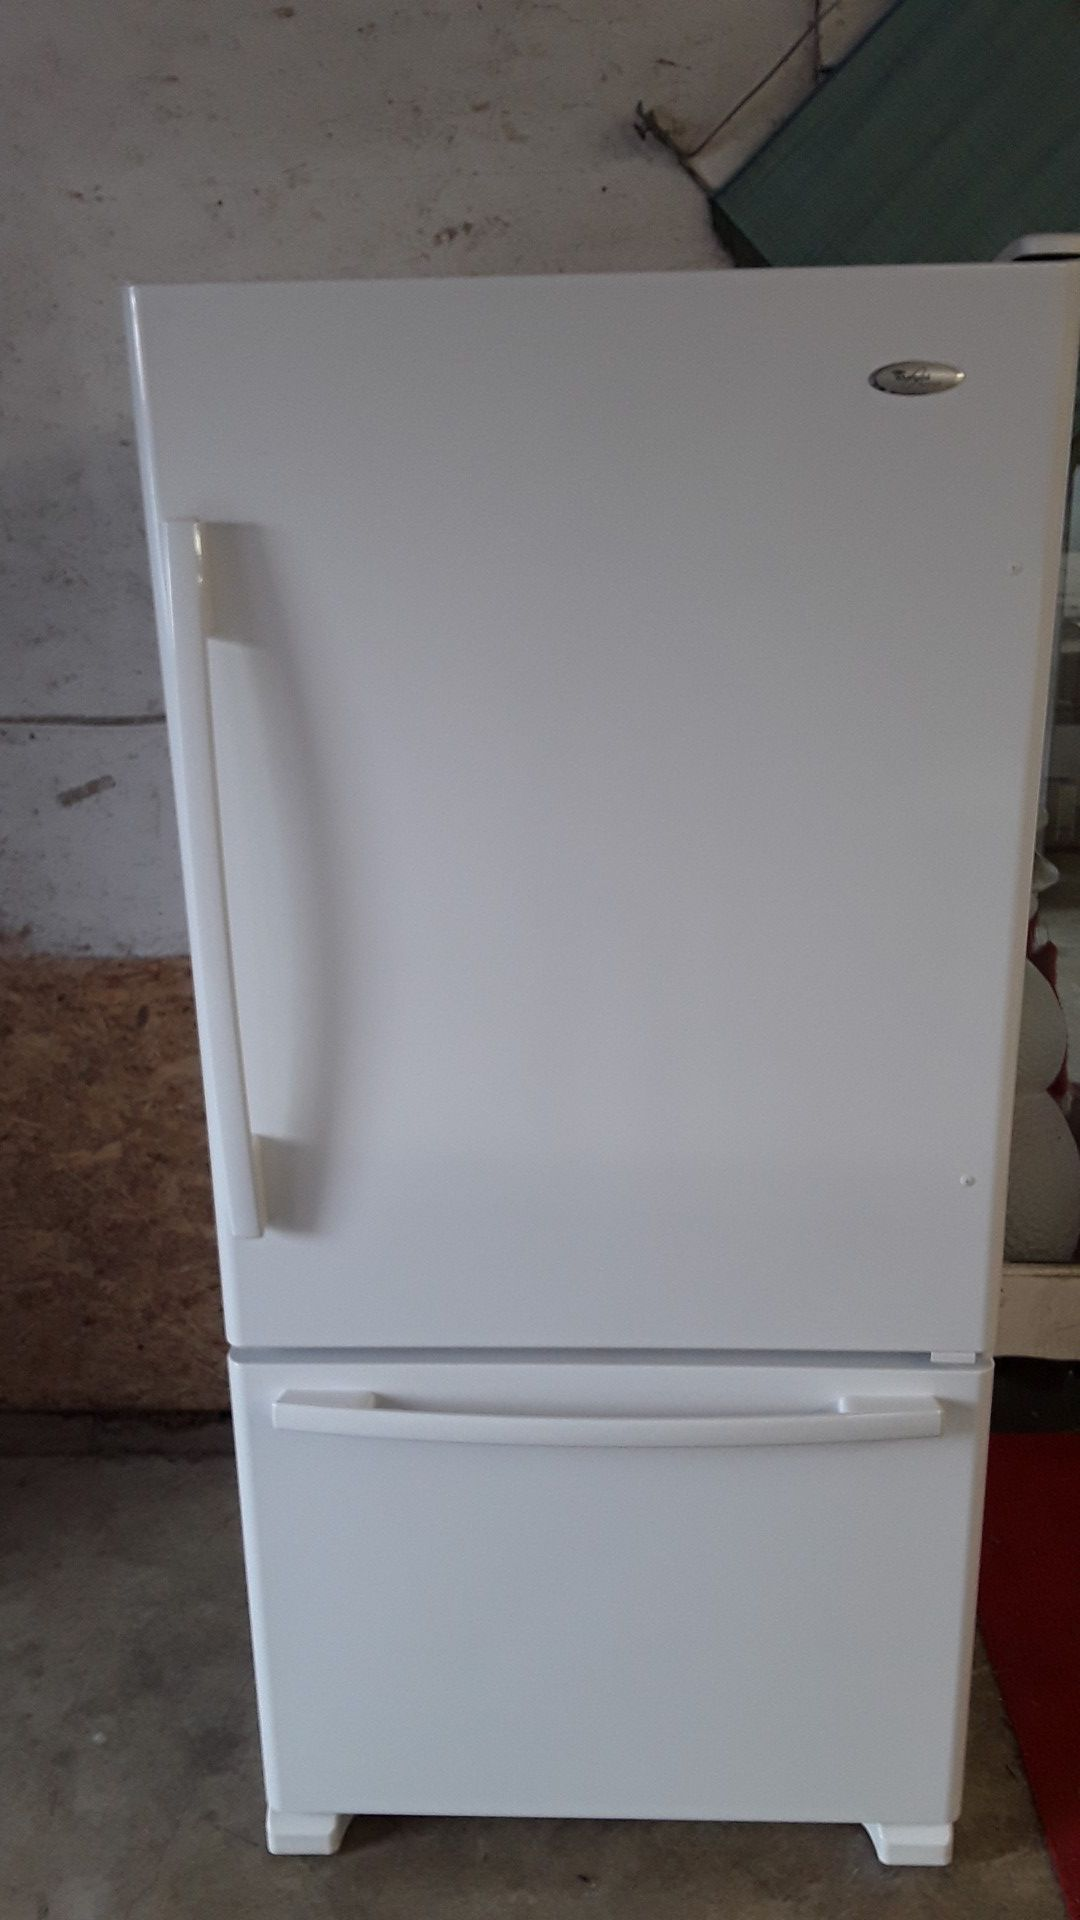 Beautiful 22 cubic foot bottom freezer pull out Whirlpool Gold with ice maker